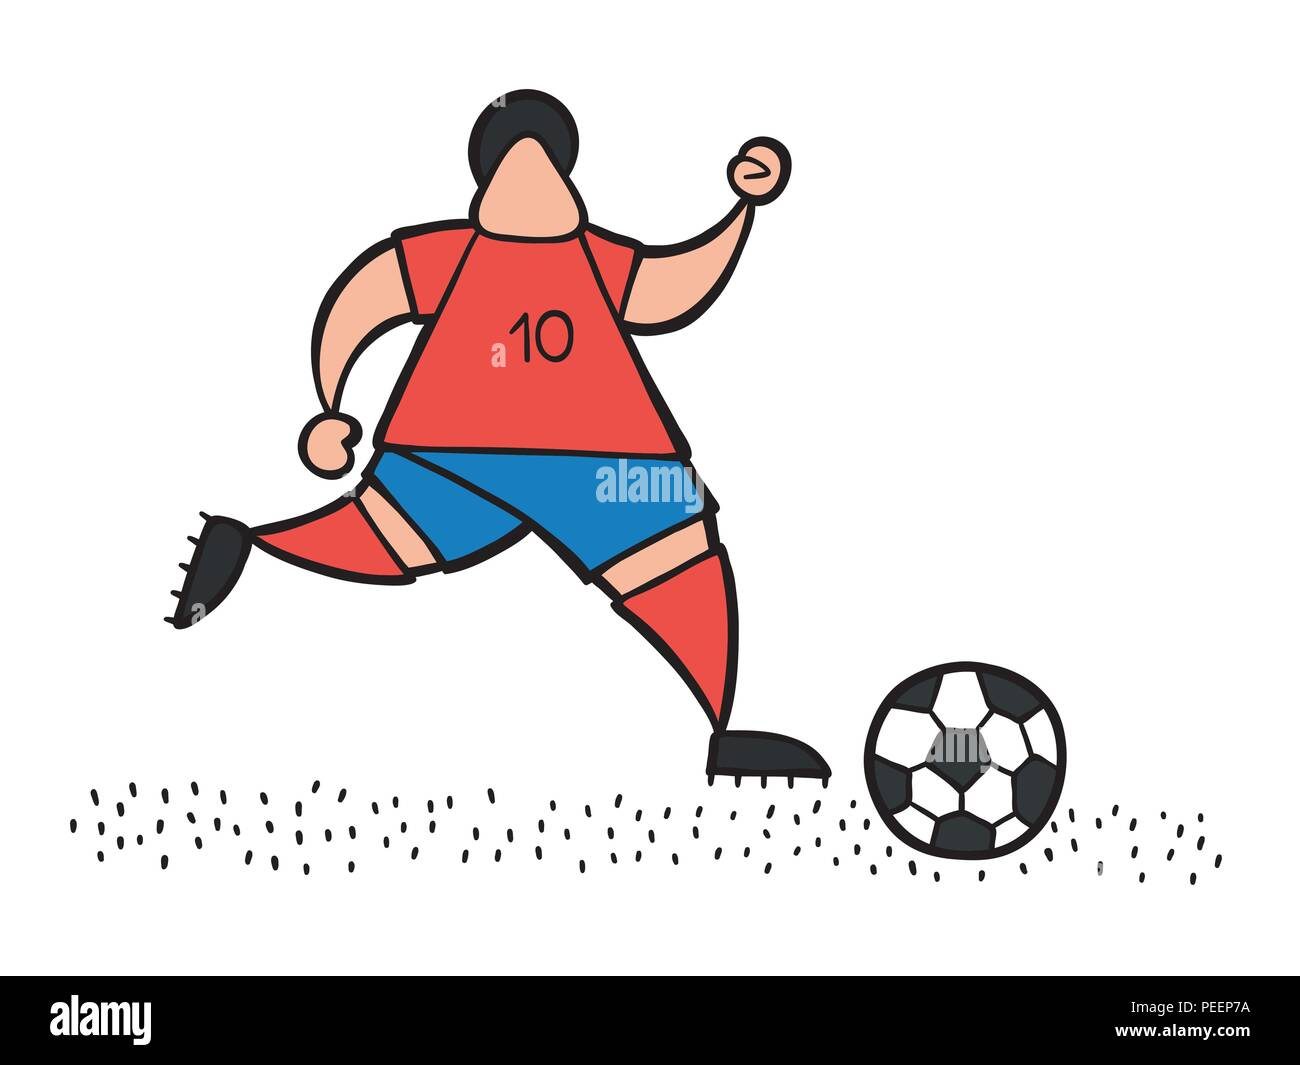 Vector illustration cartoon soccer player man running and dribble ball on pitch. - Stock Vector